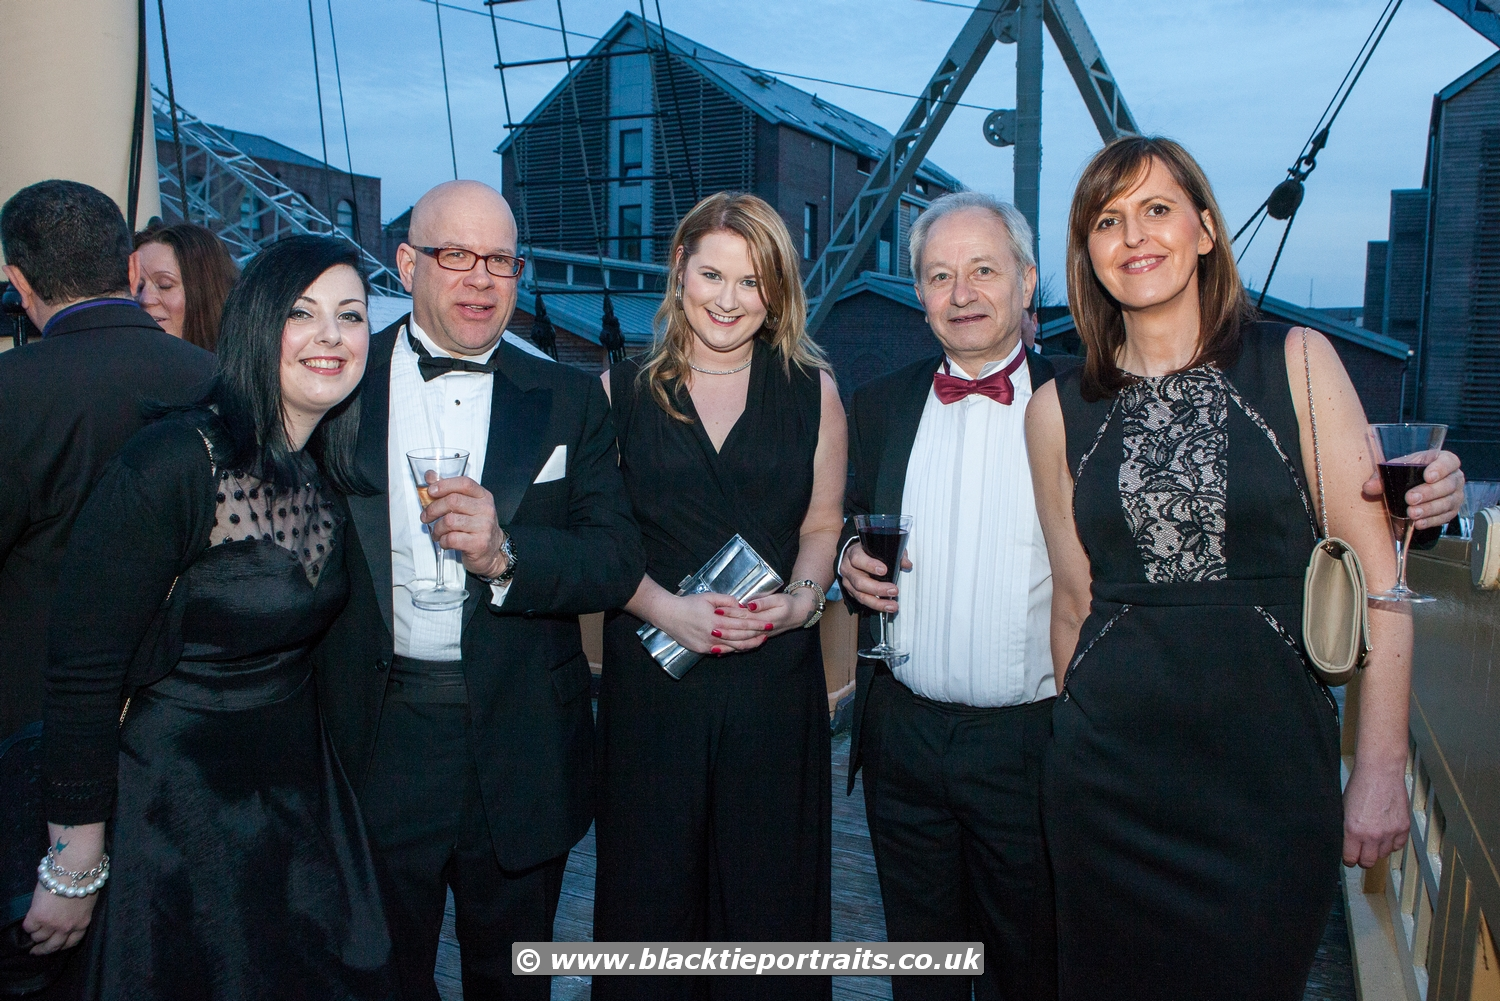 Corporate Awards Night on the SS Great Britain